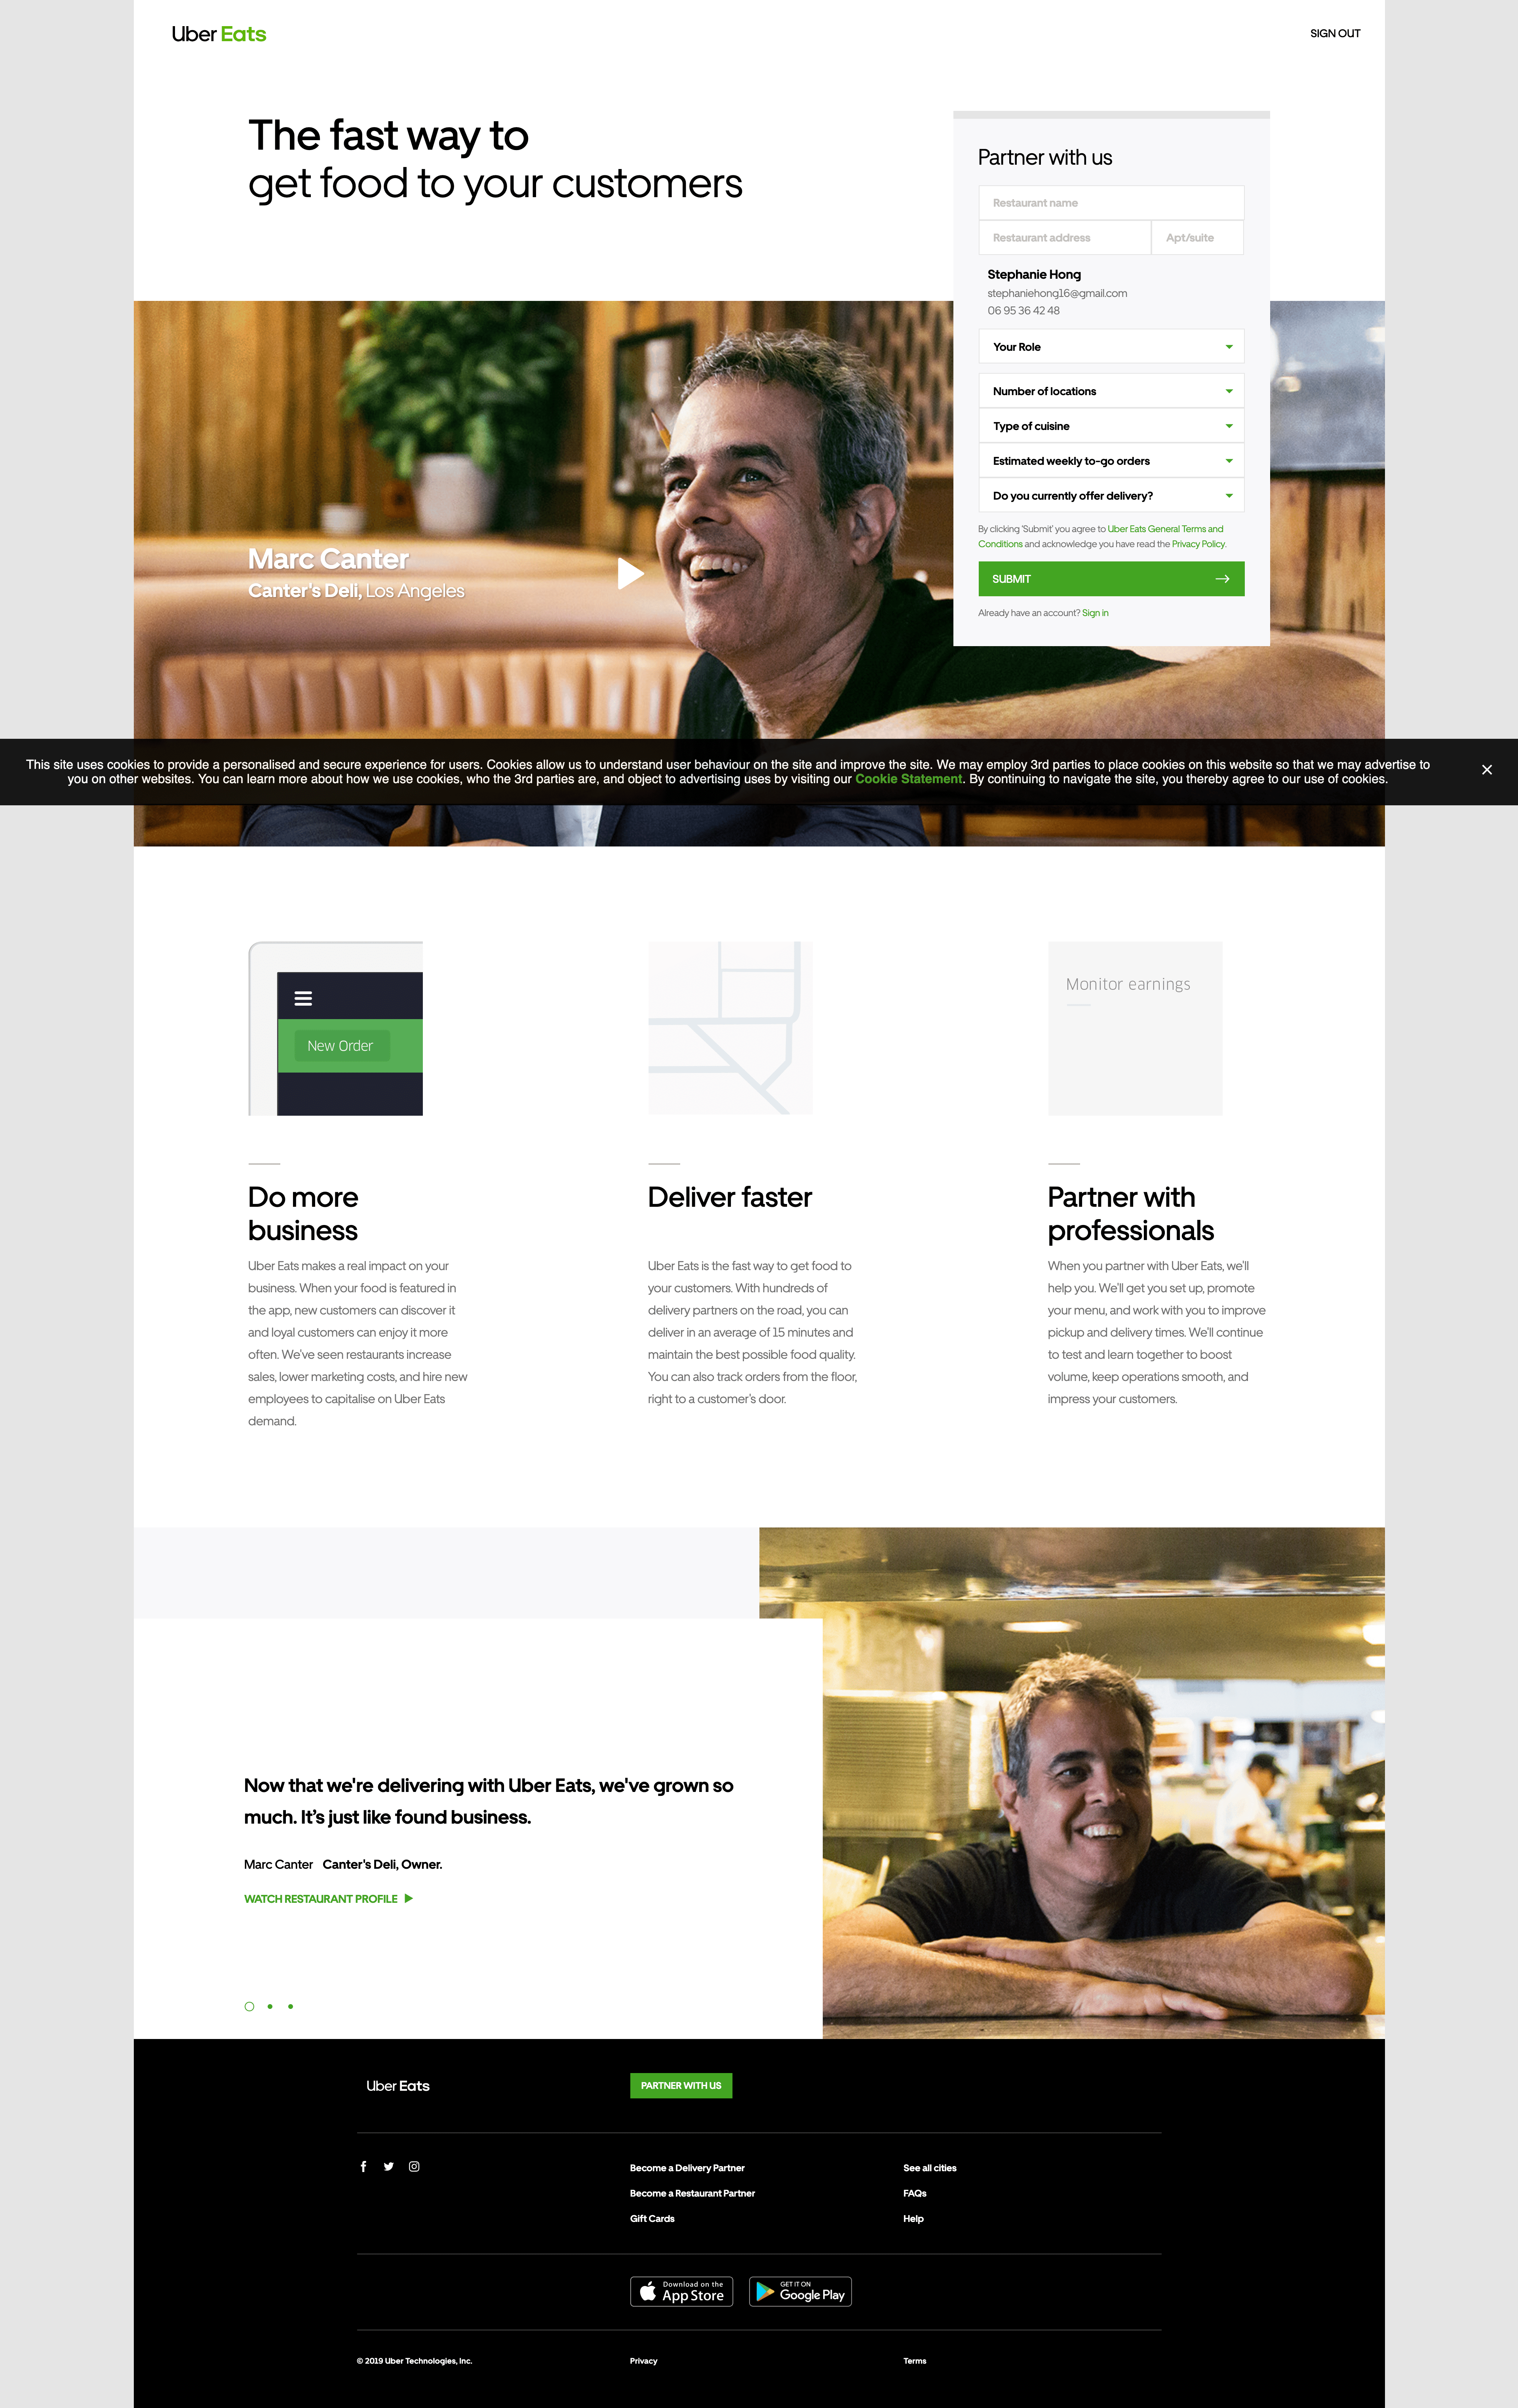 Partner With Us by Uber Eats About Us Activity Web  - UI Garage - The database of UI